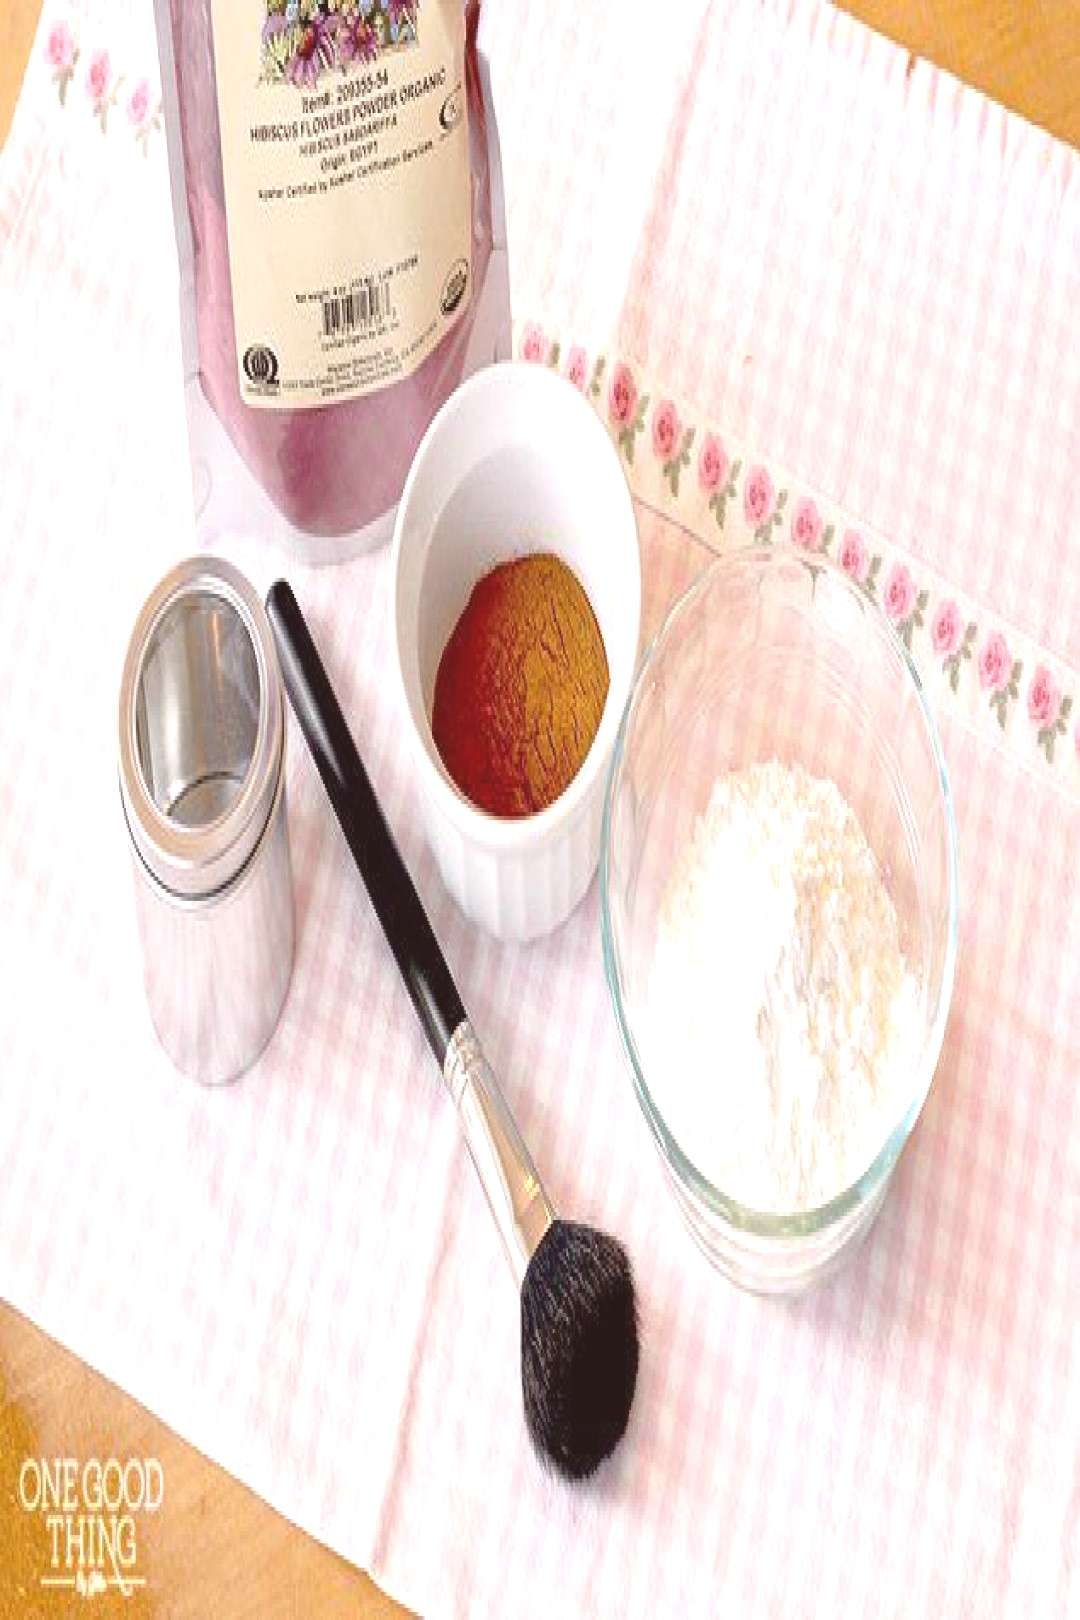 Make Your Own All Natural Homemade Blusher/Bronzer For Pennies! - One Good Thing...